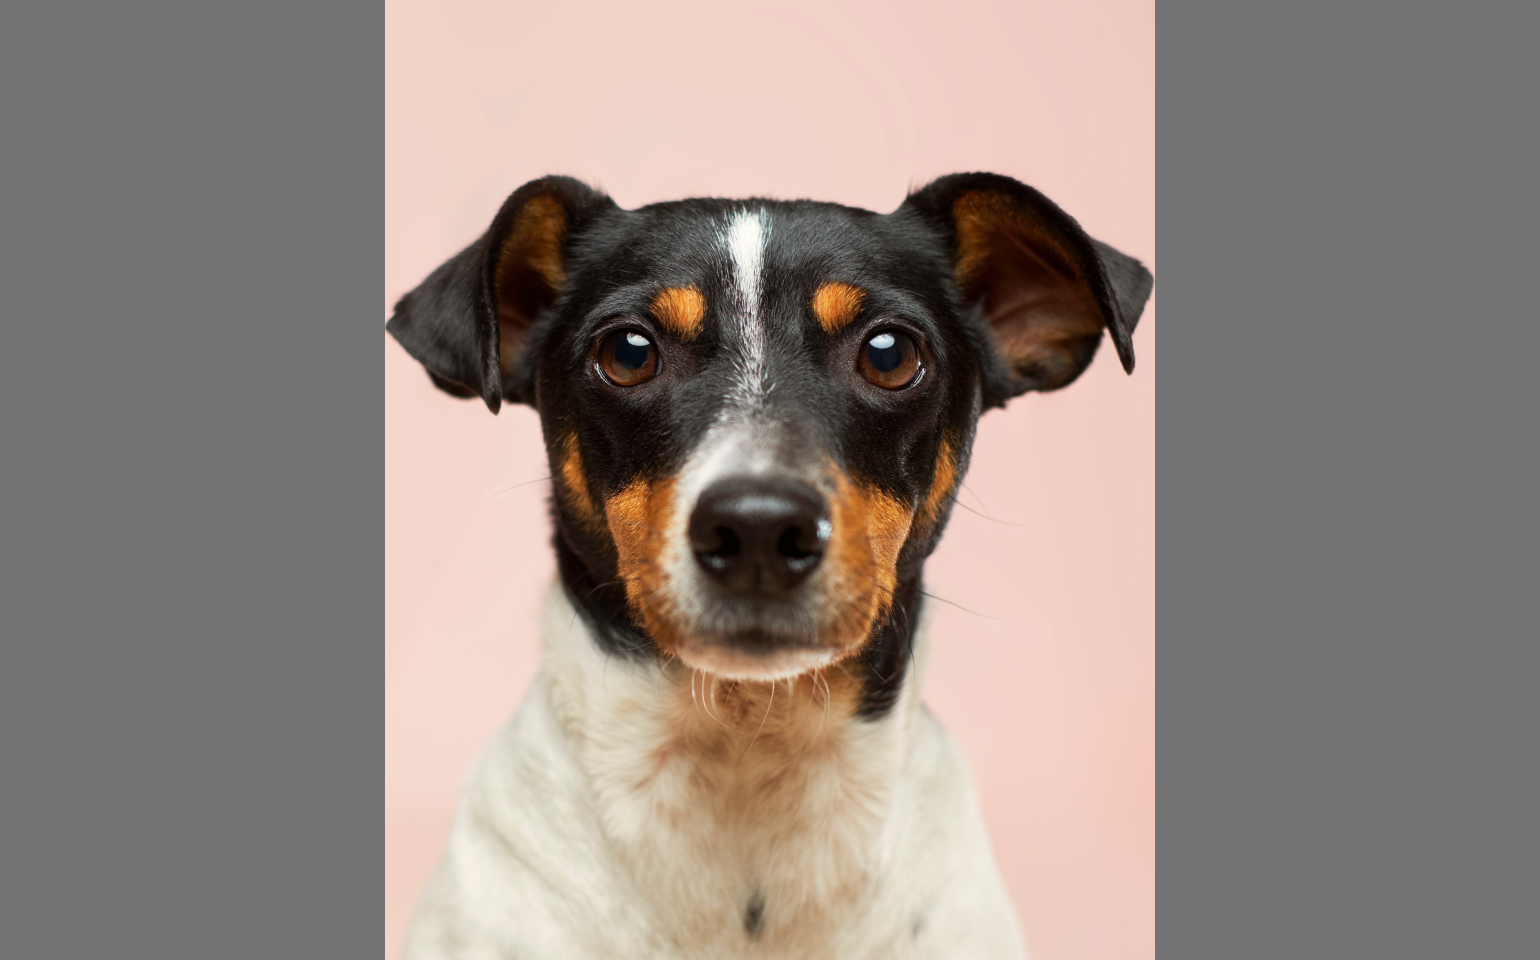 White Jack Russell terrier with a black head portrait on pink background original photo by Victor Grabarczyk